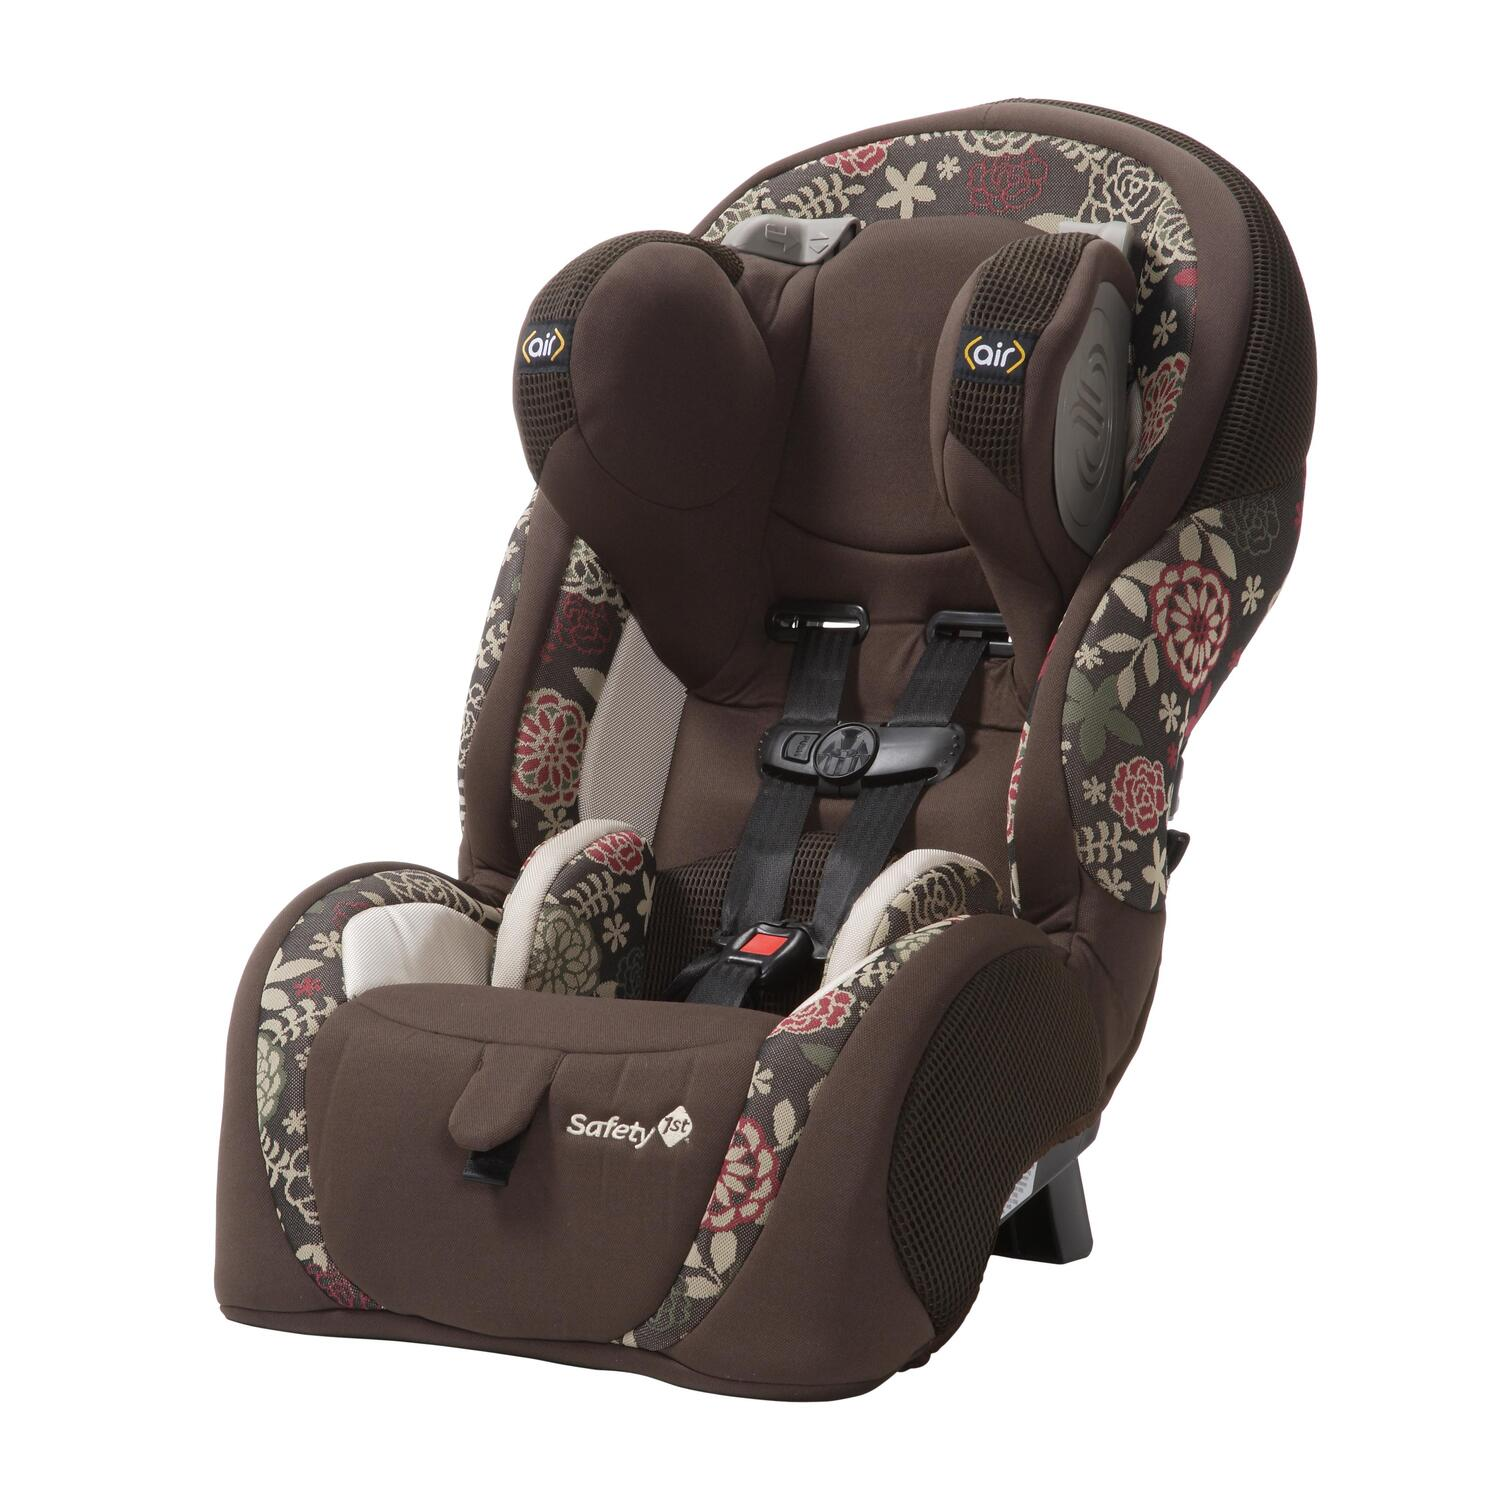 Air Protect Car Seat Safety